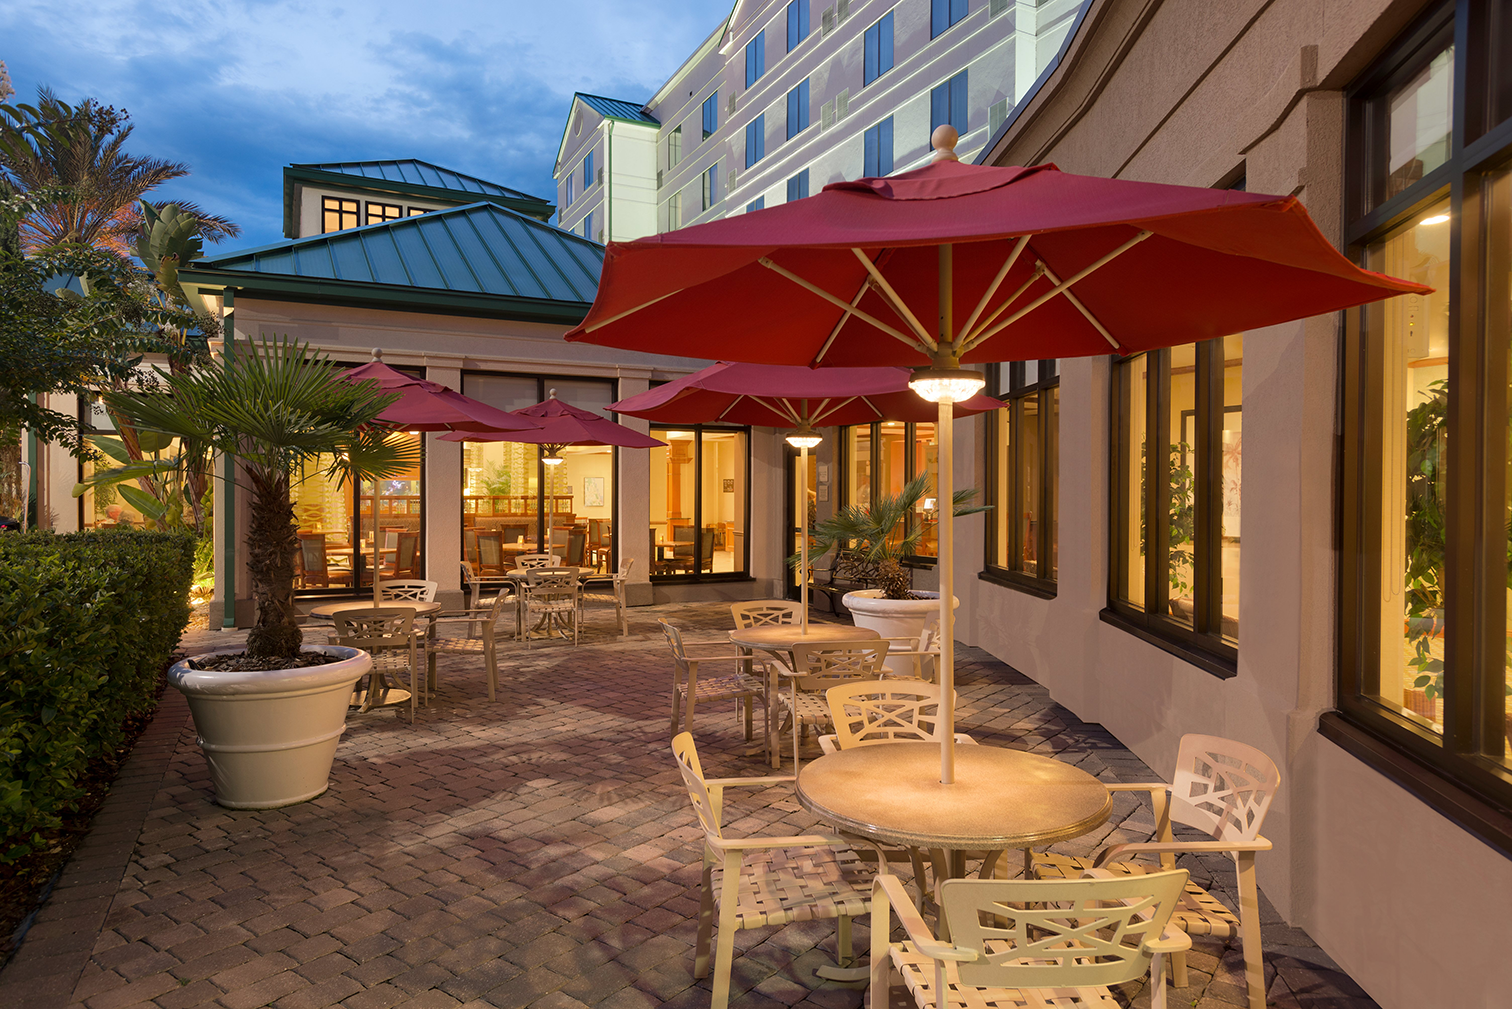 Hilton Garden Inn Palm Coast Town Center – Pavilion Lounge and Patio – 1056533